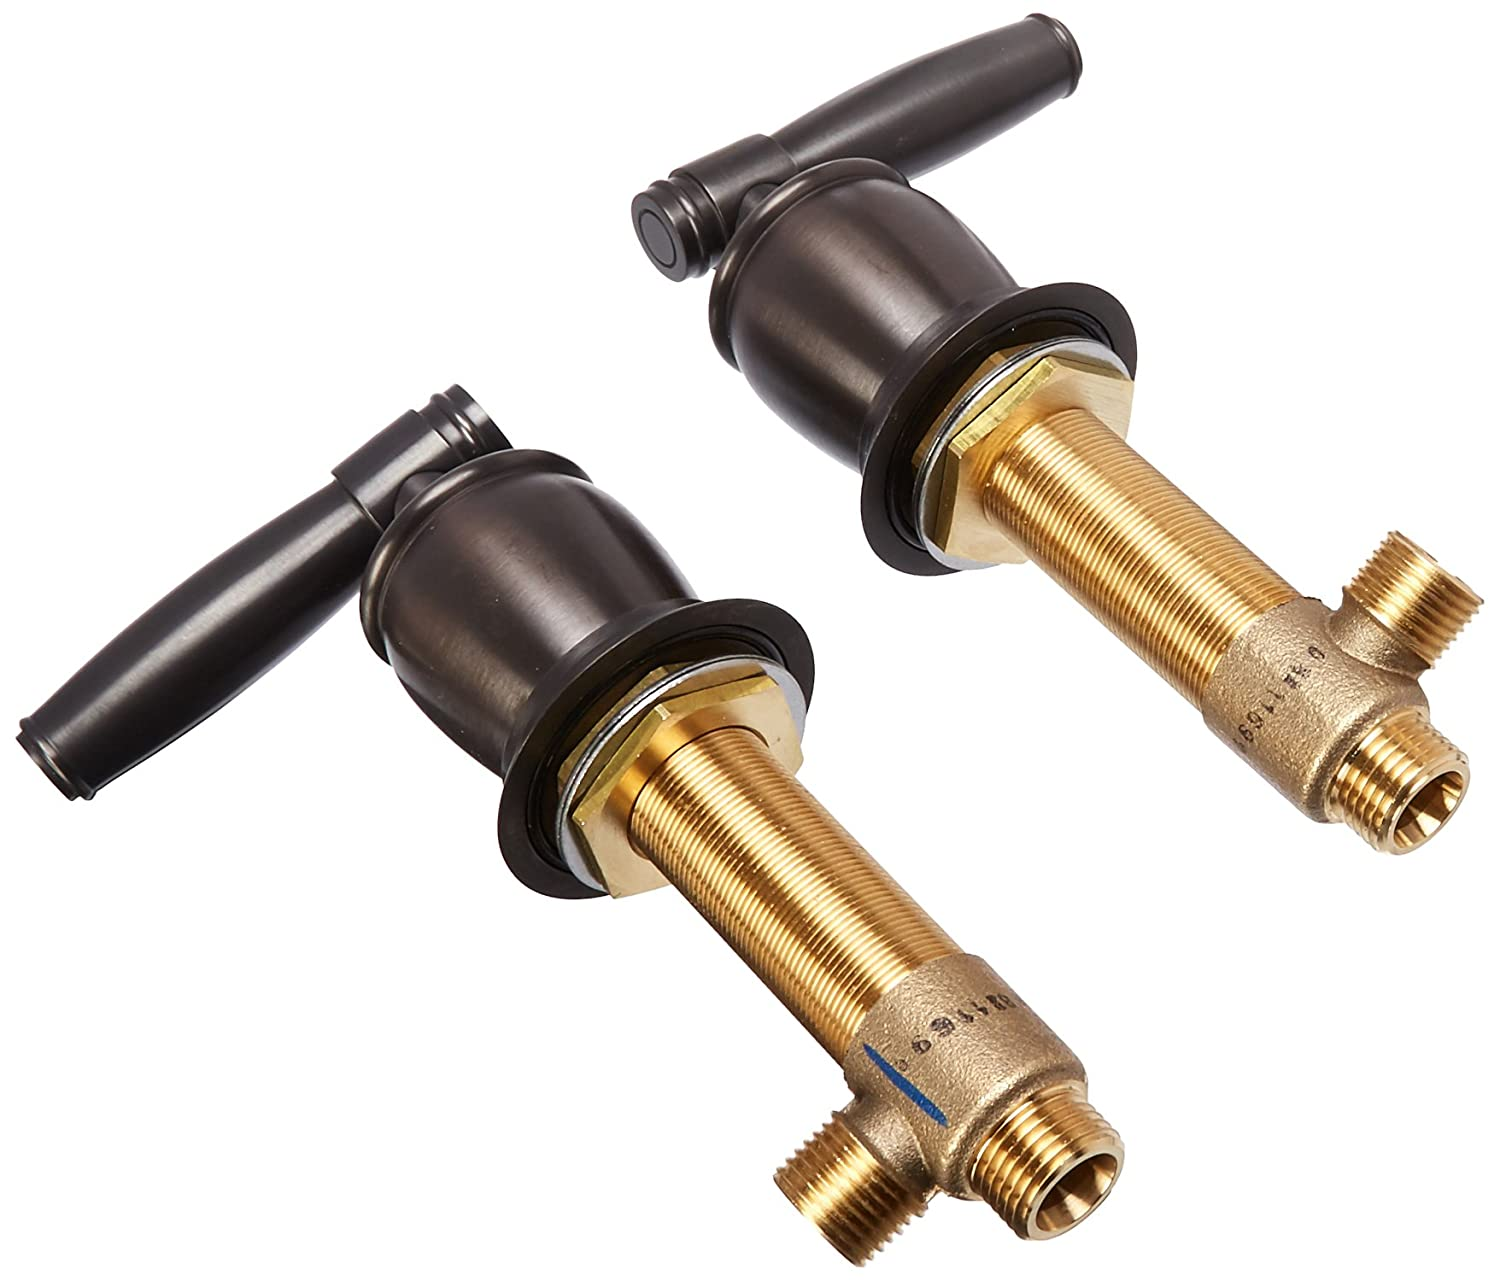 Rohl R9458426TCB Michael Berman Pair of Complete Side Valves Including Upper and Lower Shroud Escutcheons with Metal Levers in Tuscan Brass with 1//2 Quarter Turn Trumbull Industries